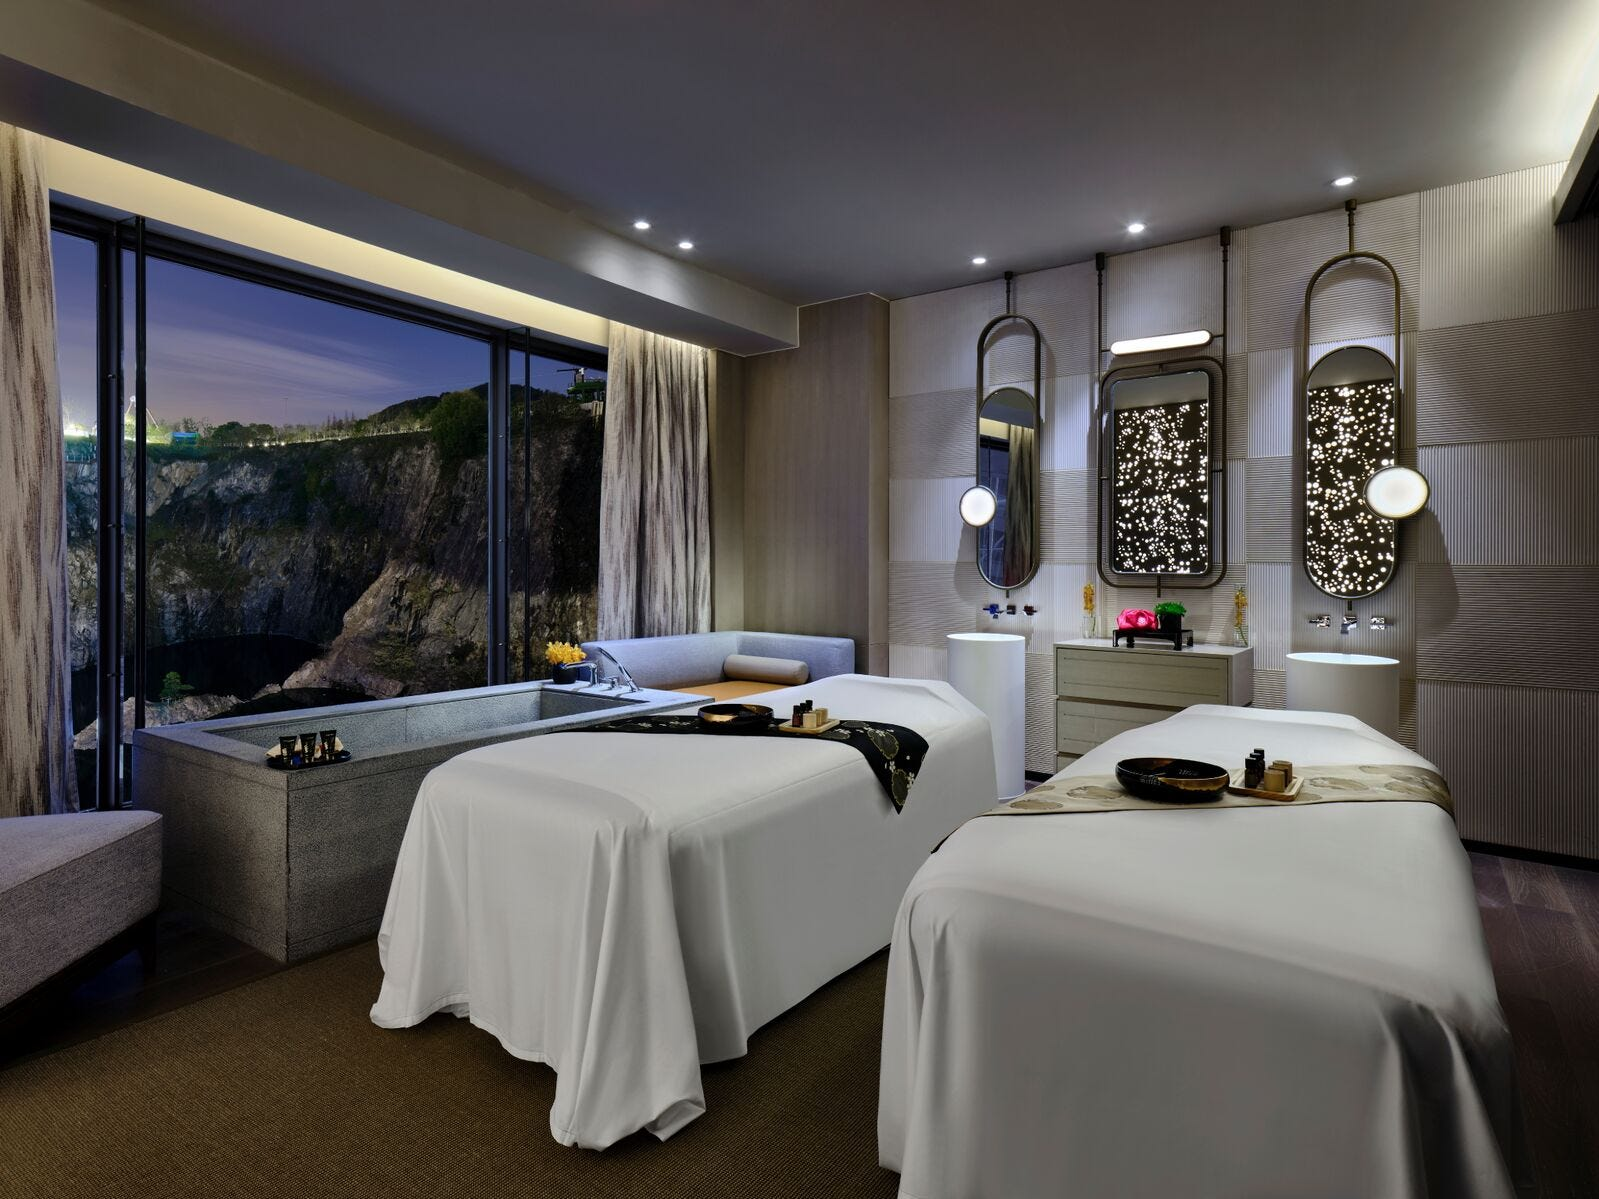 Many of the treatment rooms have exquisite views if you can keep your eyes open to enjoy them.